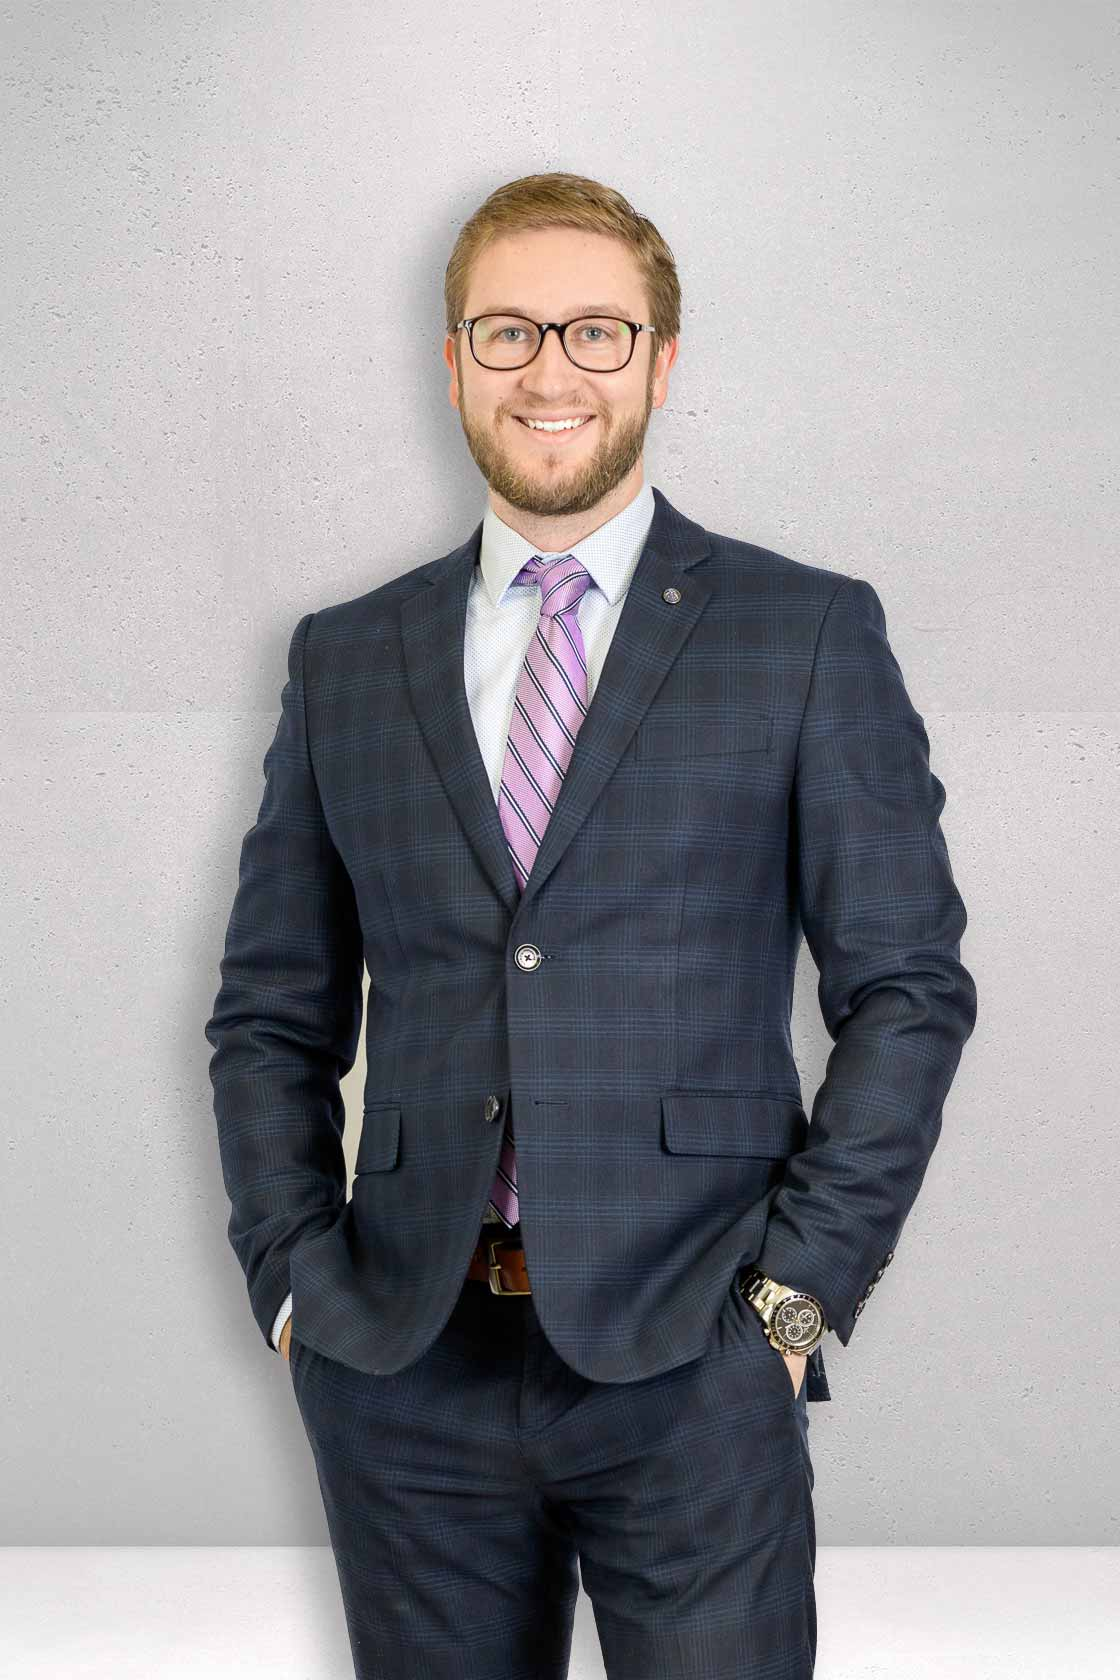 Kyle Macyszyn of Campbell & Company Real Estate